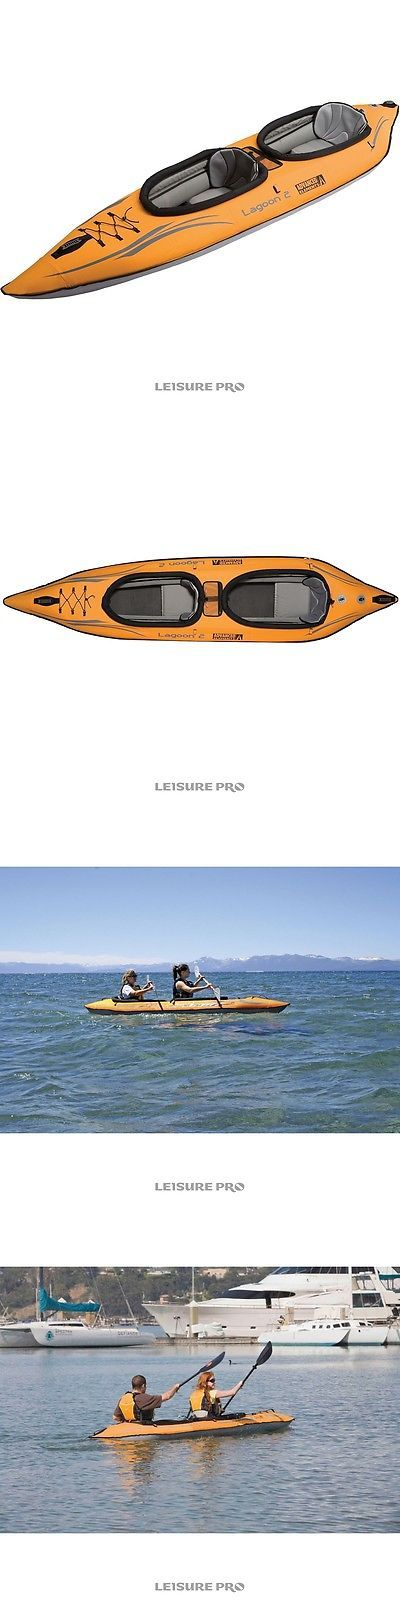 Inflatables 87090: Advanced Elements Lagoon 2 Person Kayak, Orange Gray -> BUY IT NOW ONLY: $499 on eBay!